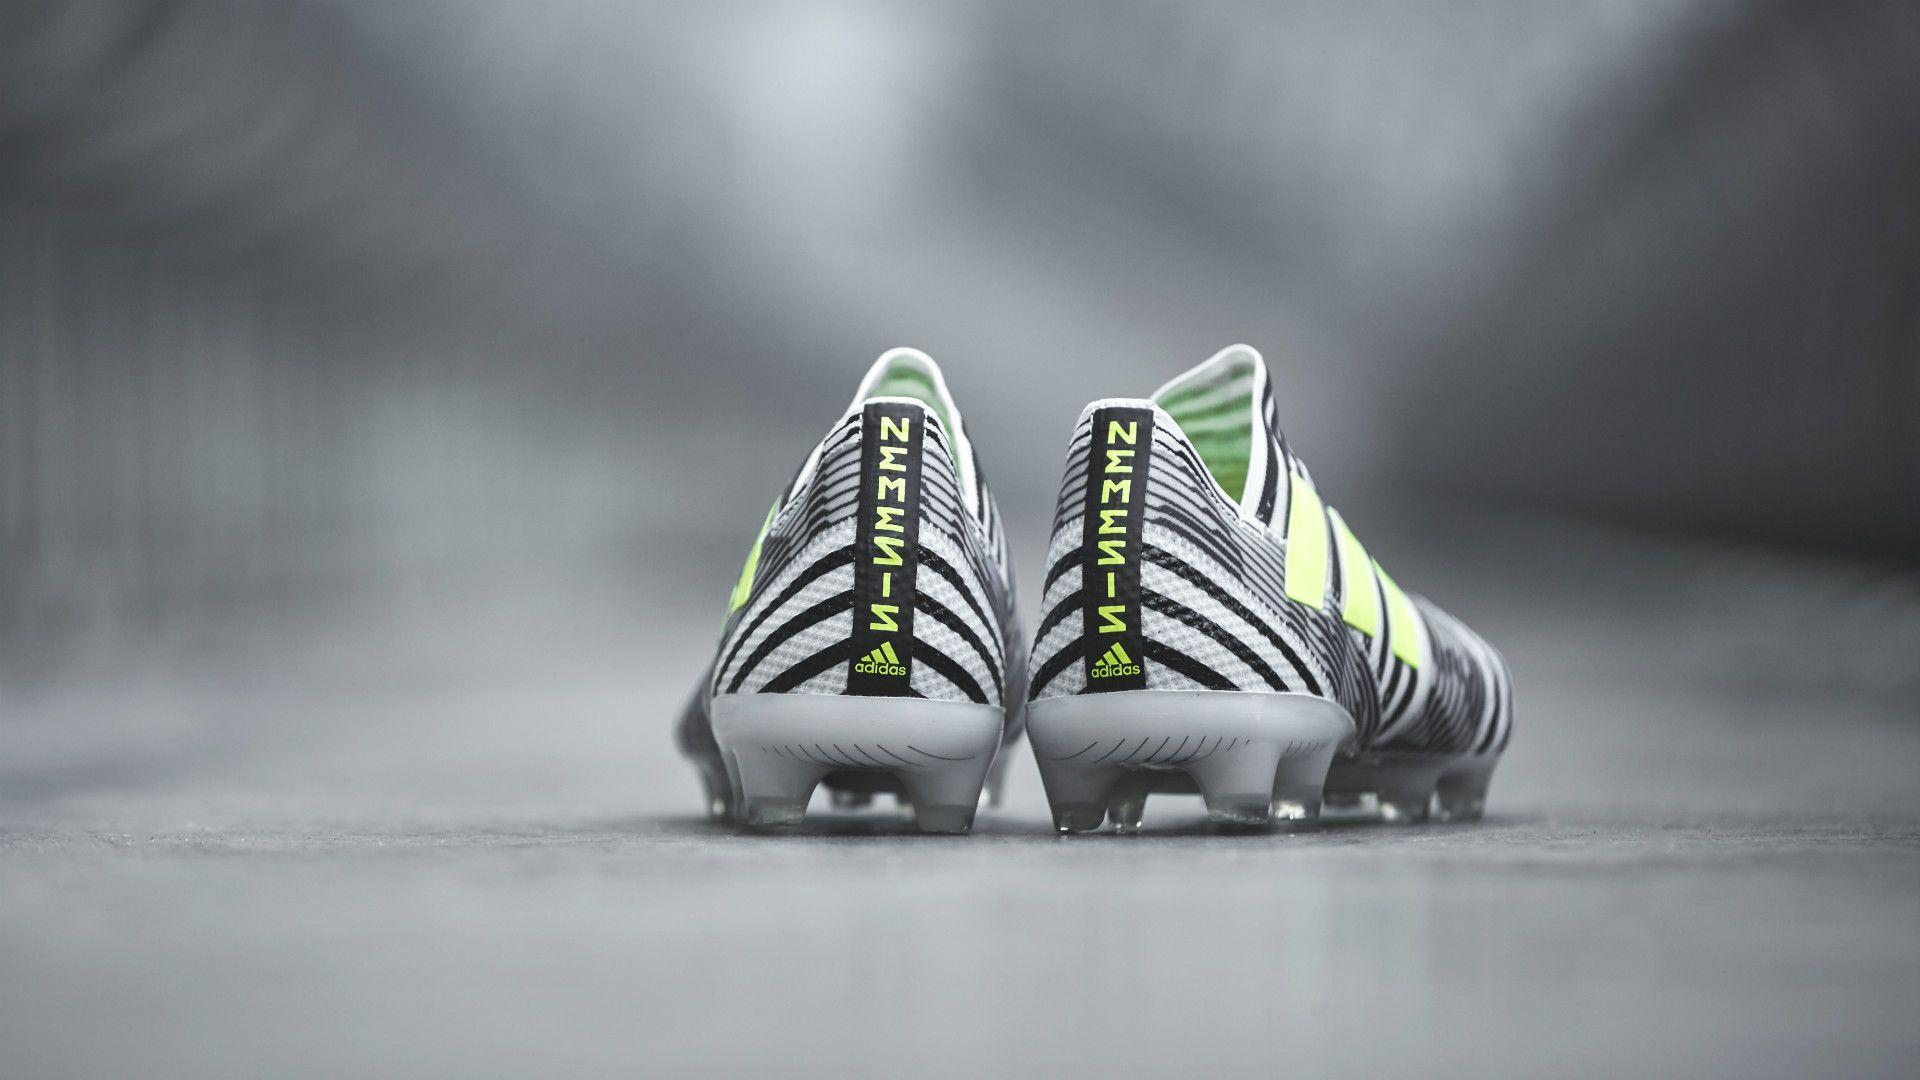 Messi Shoes Wallpapers Wallpaper Cave